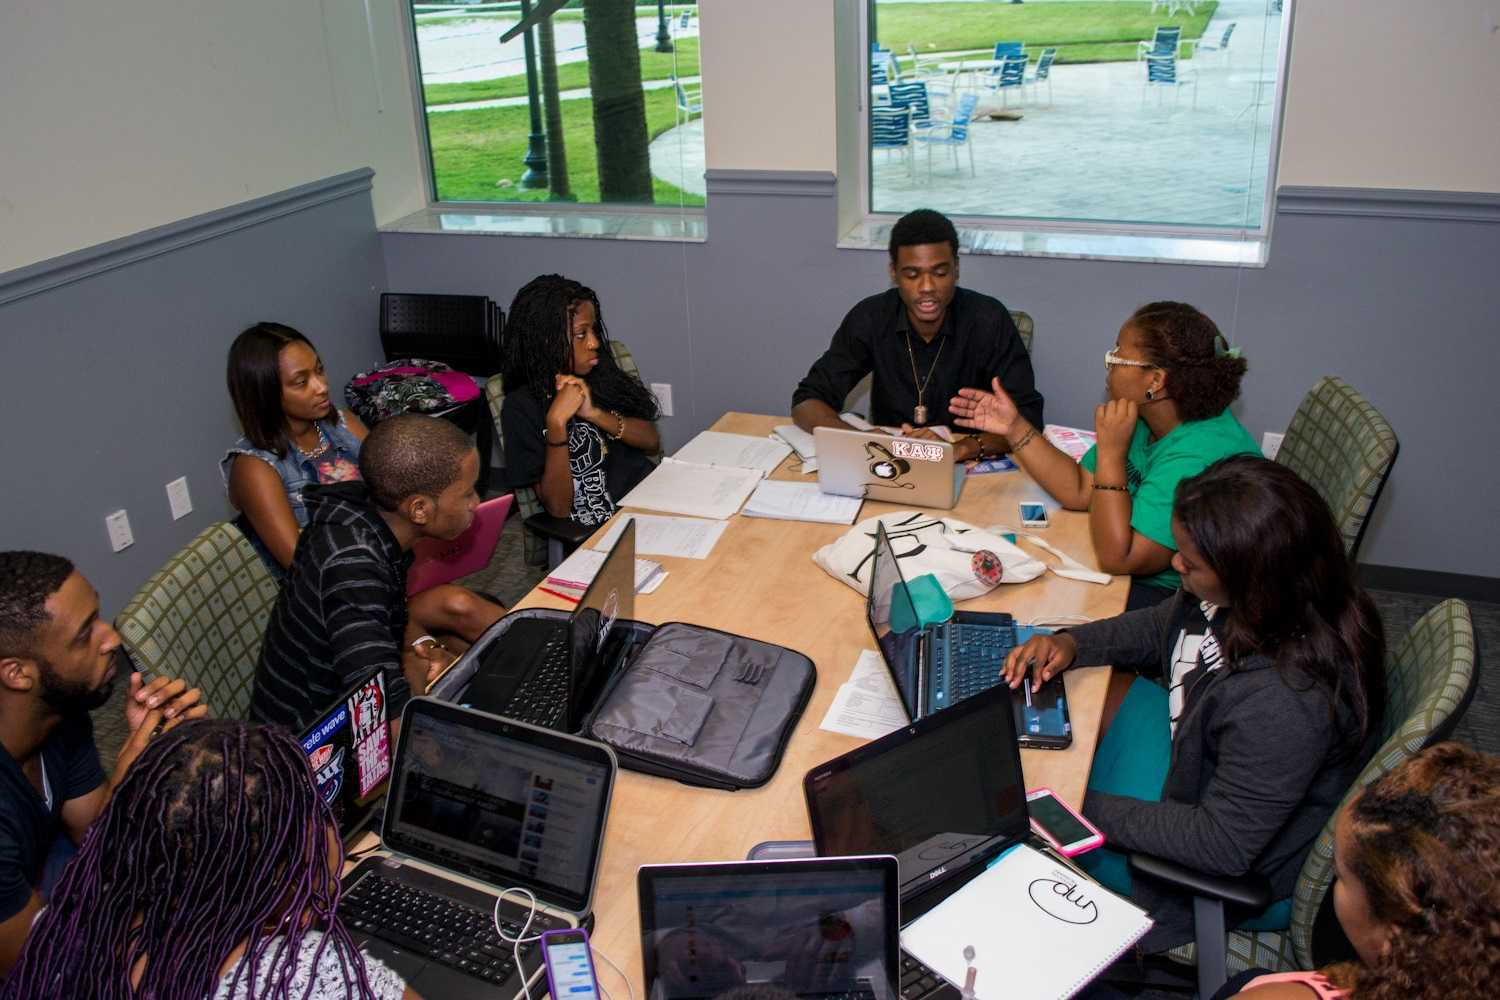 [Alexis H. | Contributing Photographer] BSU meeting discussing the Ferguson shootings.